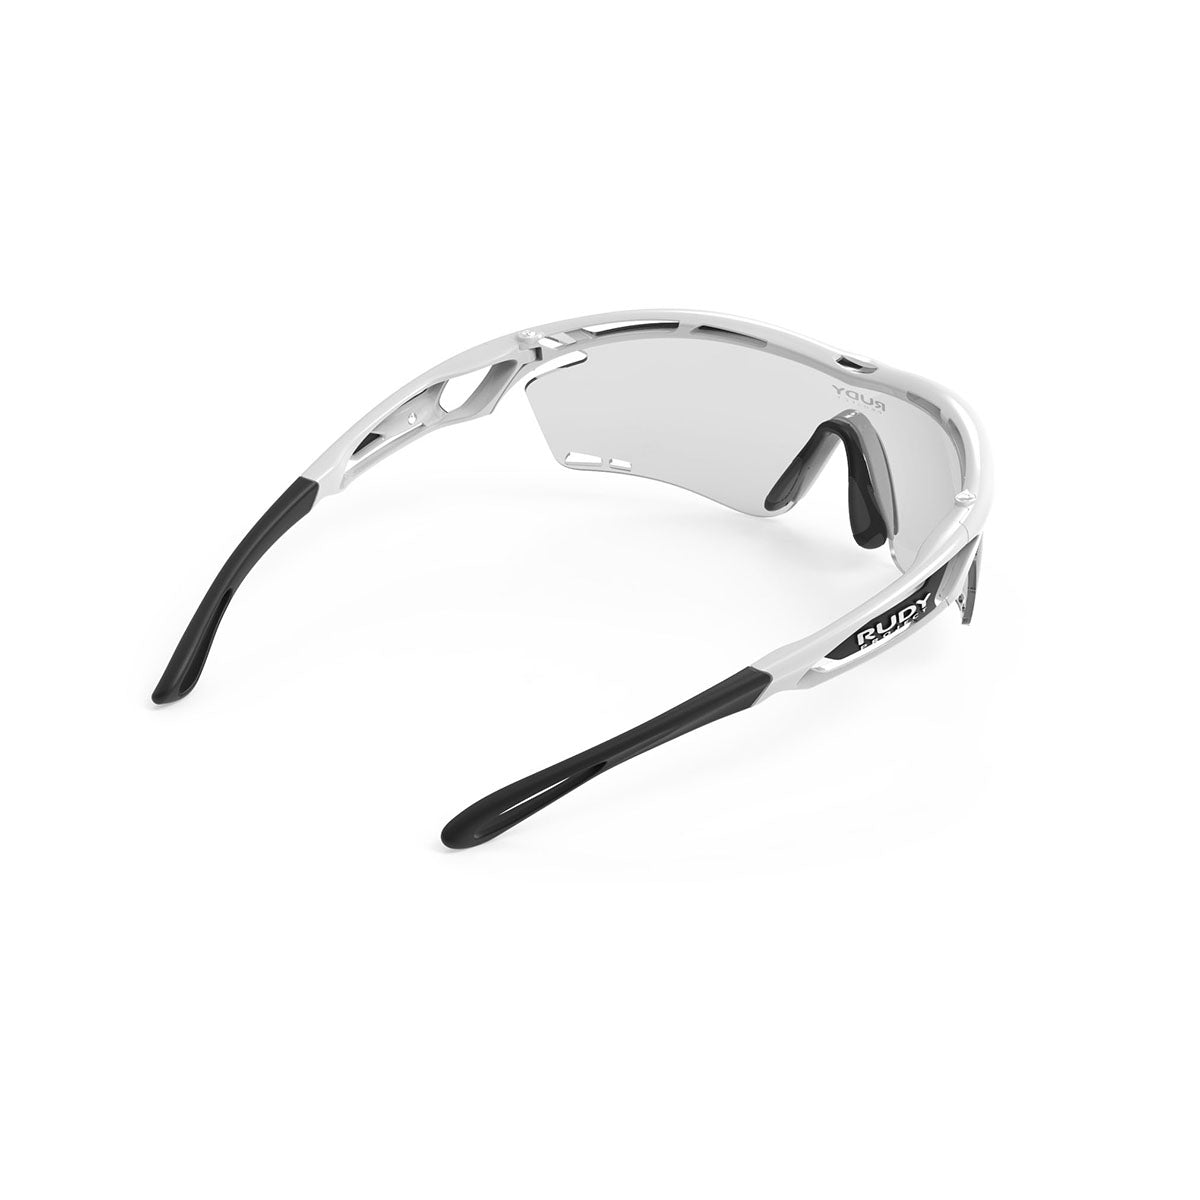 Rudy Project - Tralyx - frame color: White Gloss - lens color: ImpactX-2 Photochromic Clear to Black - photo angle: Top Back Angle Variant Hover Image